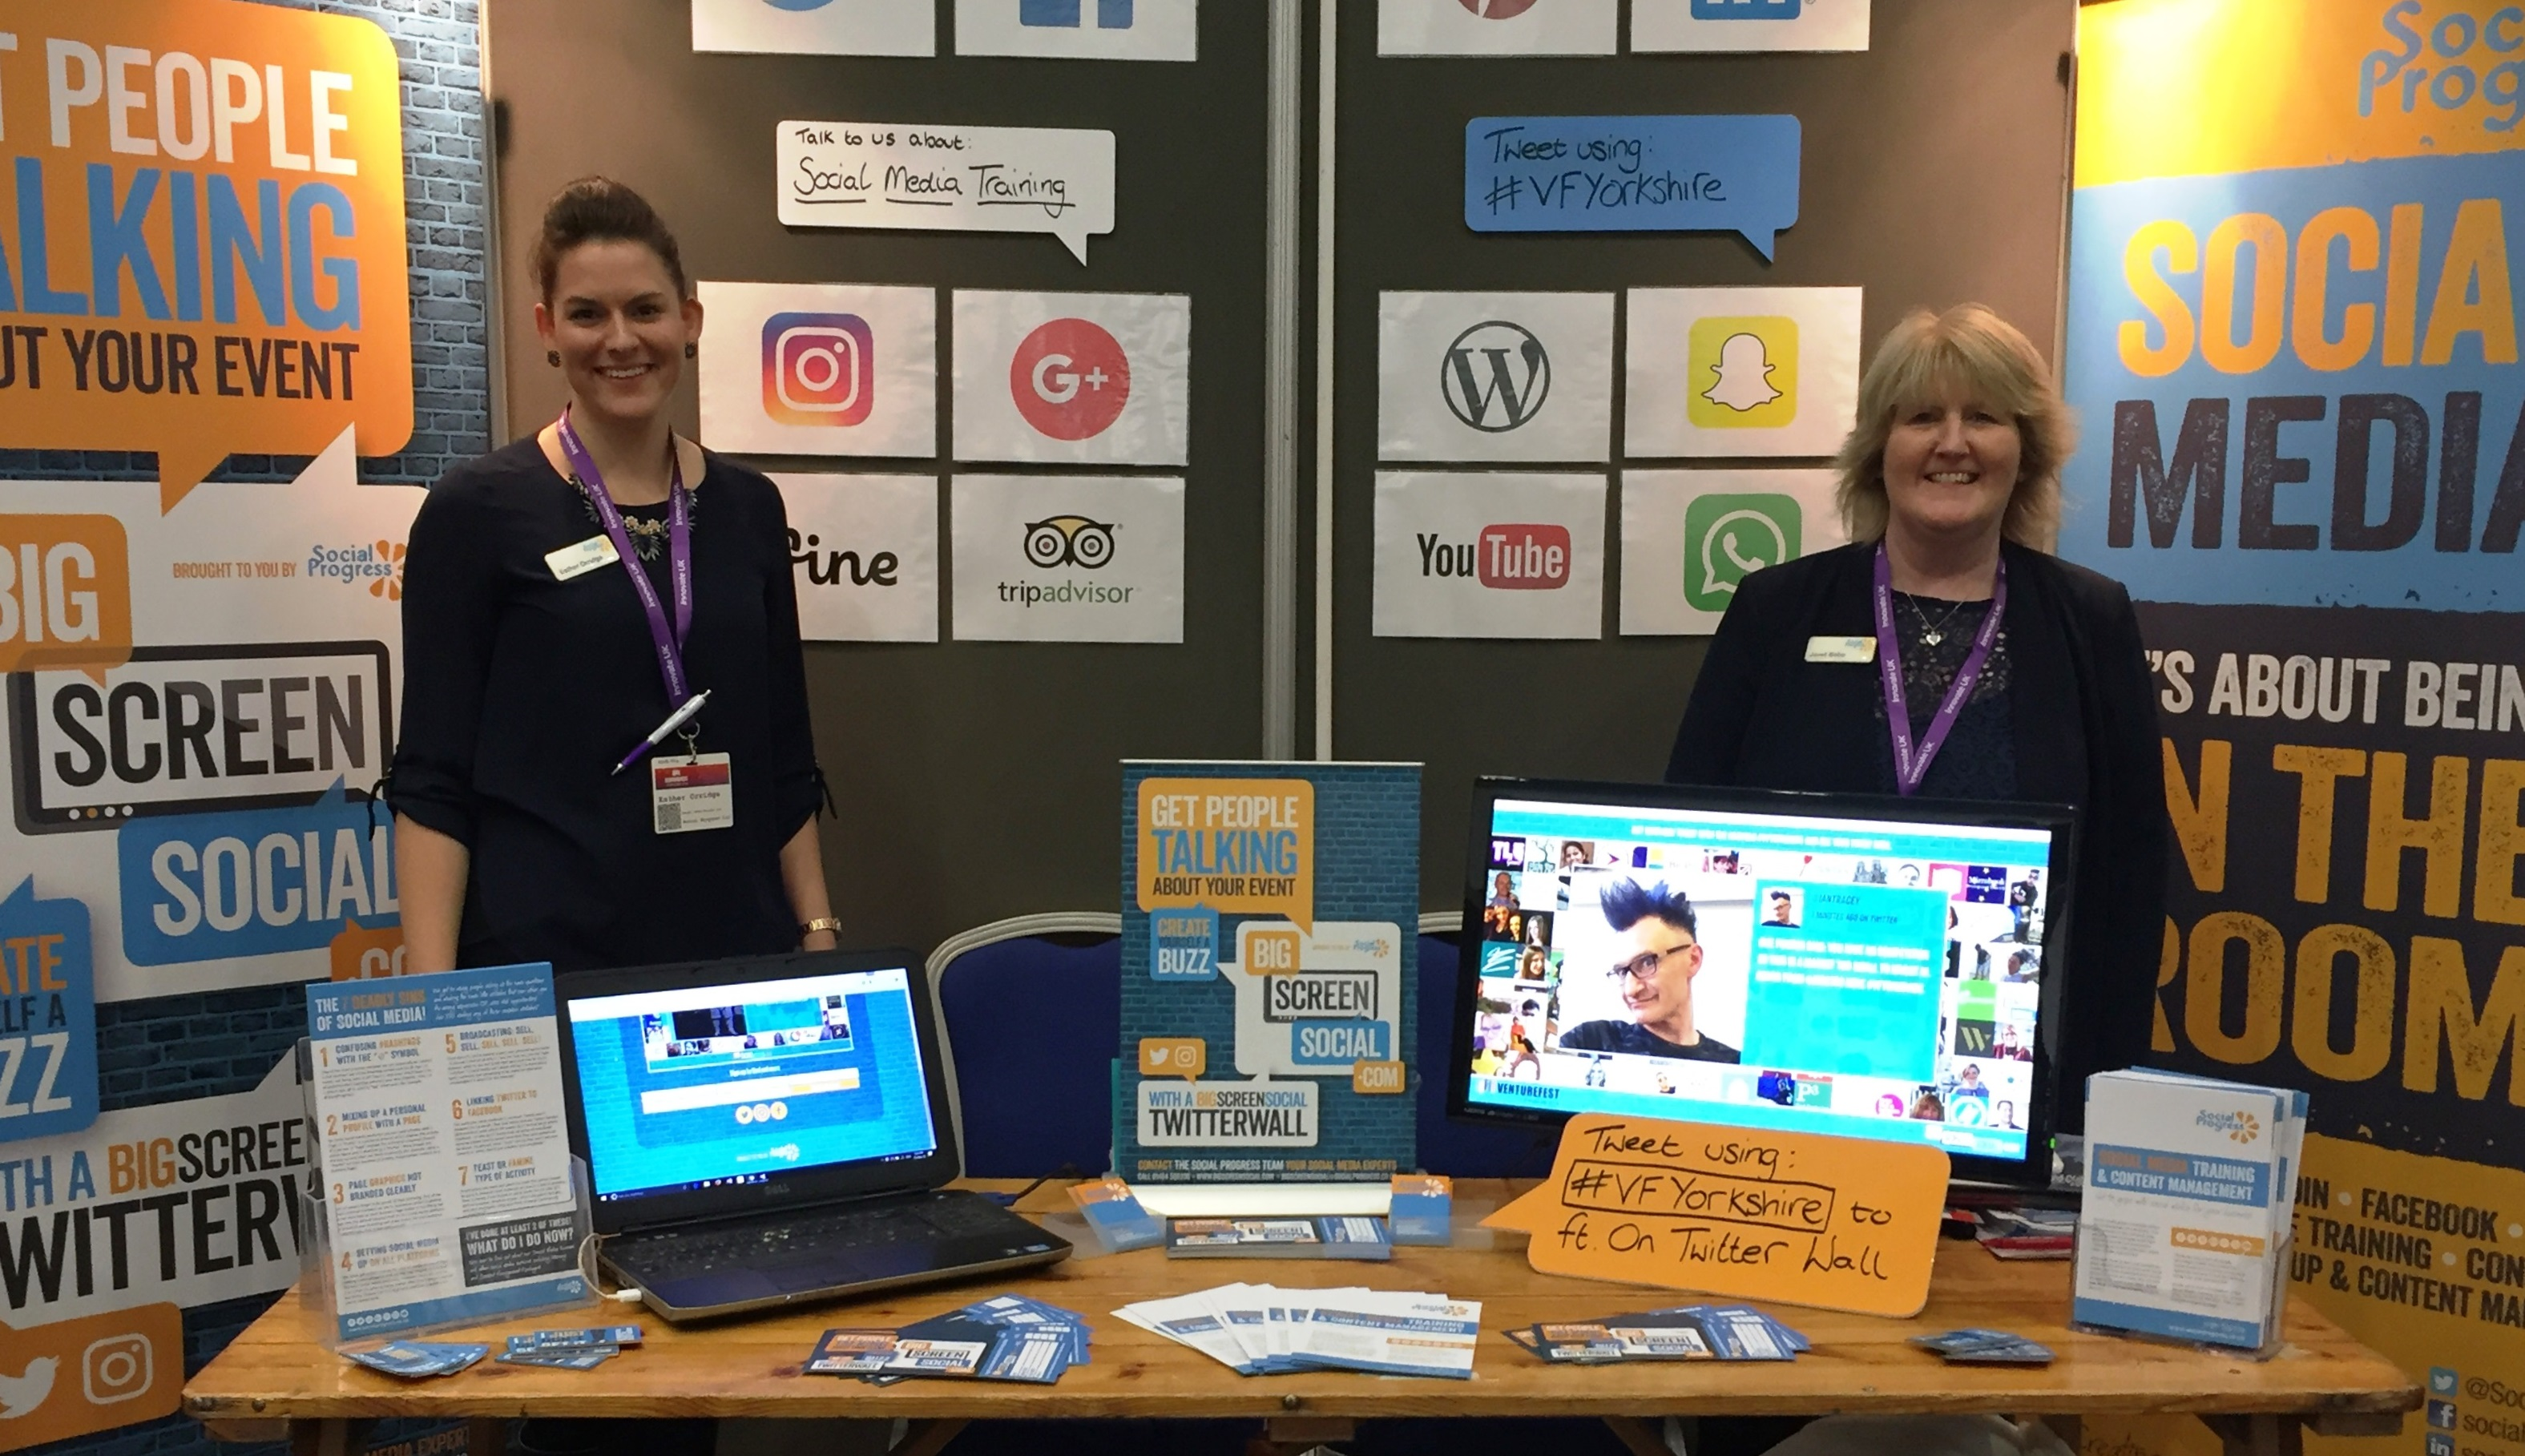 Social Progress Ltd - Venturefest Yorkshire 2016 - Big Screen Social - Social Media Training Yorkshire